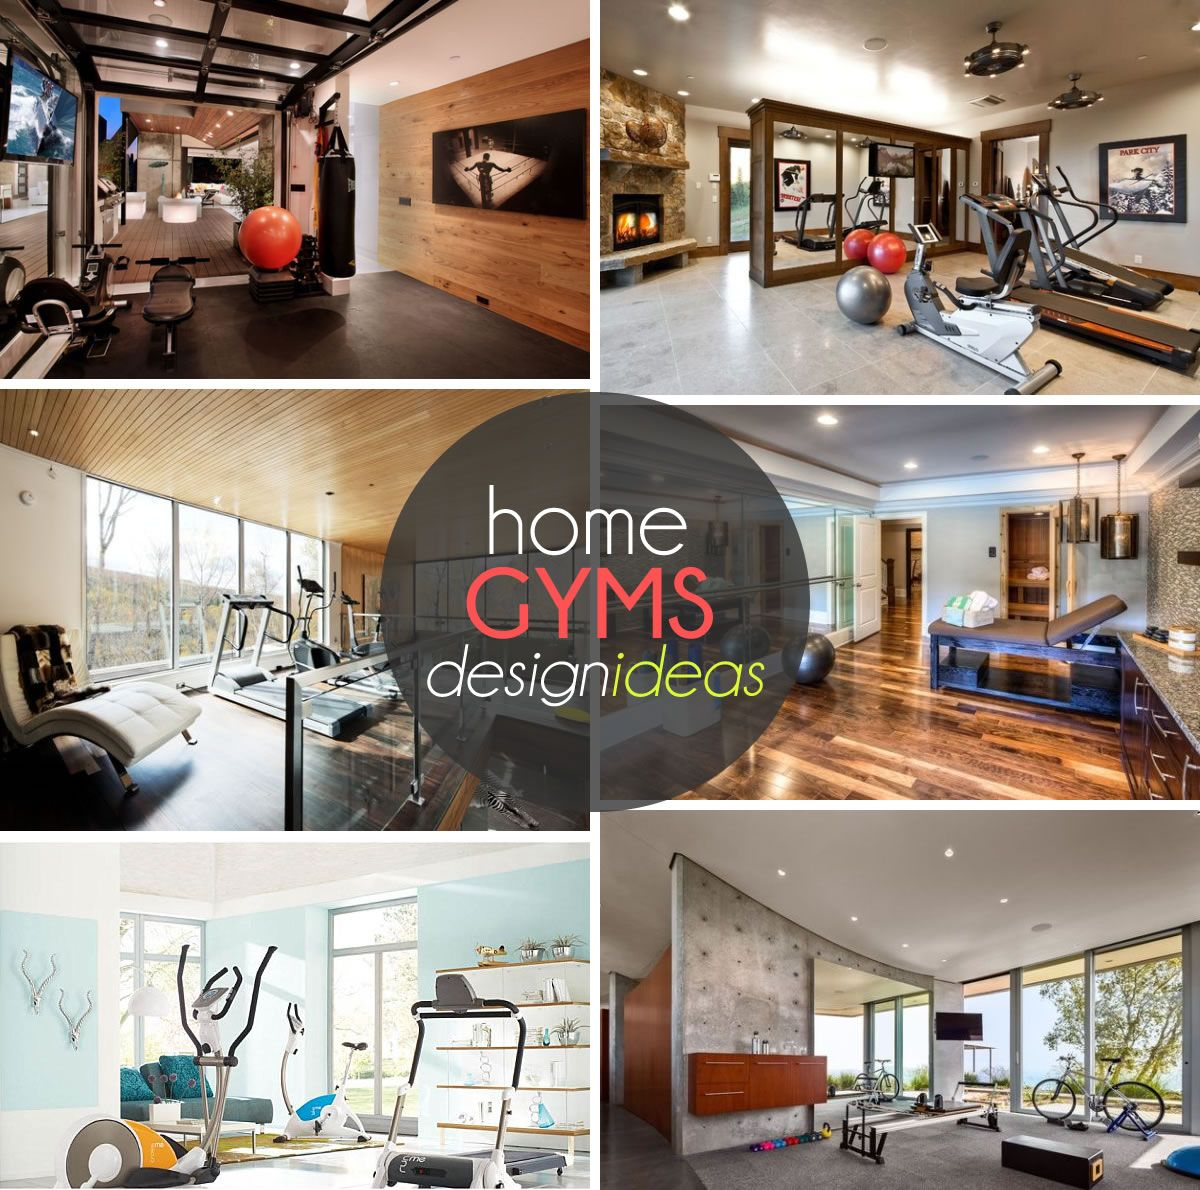 Gym Interior, Fitness Design And